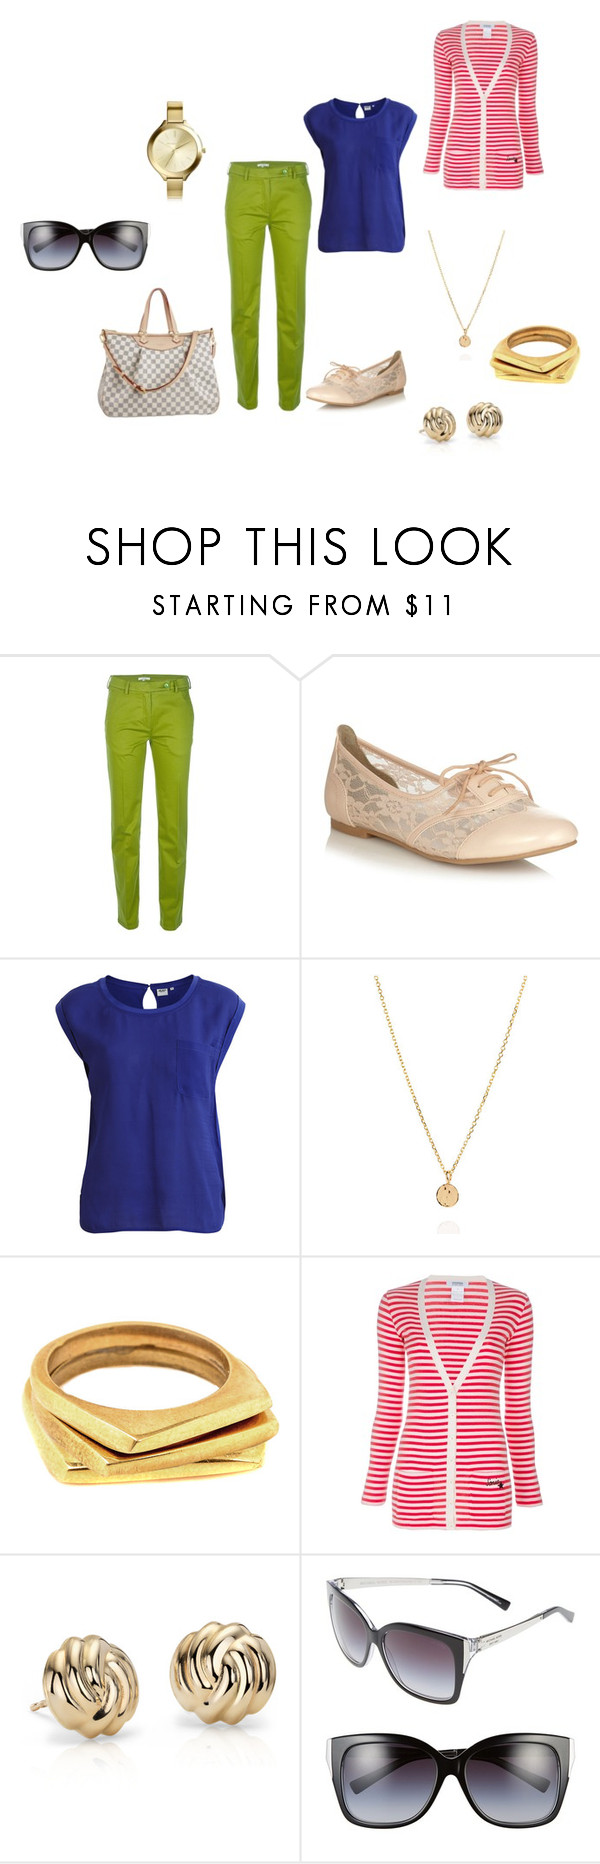 """""""Sin título #373"""" by alejaborrayo on Polyvore featuring moda, Carven, Call it SPRING, Object Collectors Item, Laura Lee, Louis Vuitton, SOKO, Sonia by Sonia Rykiel, Blue Nile y Michael Kors"""